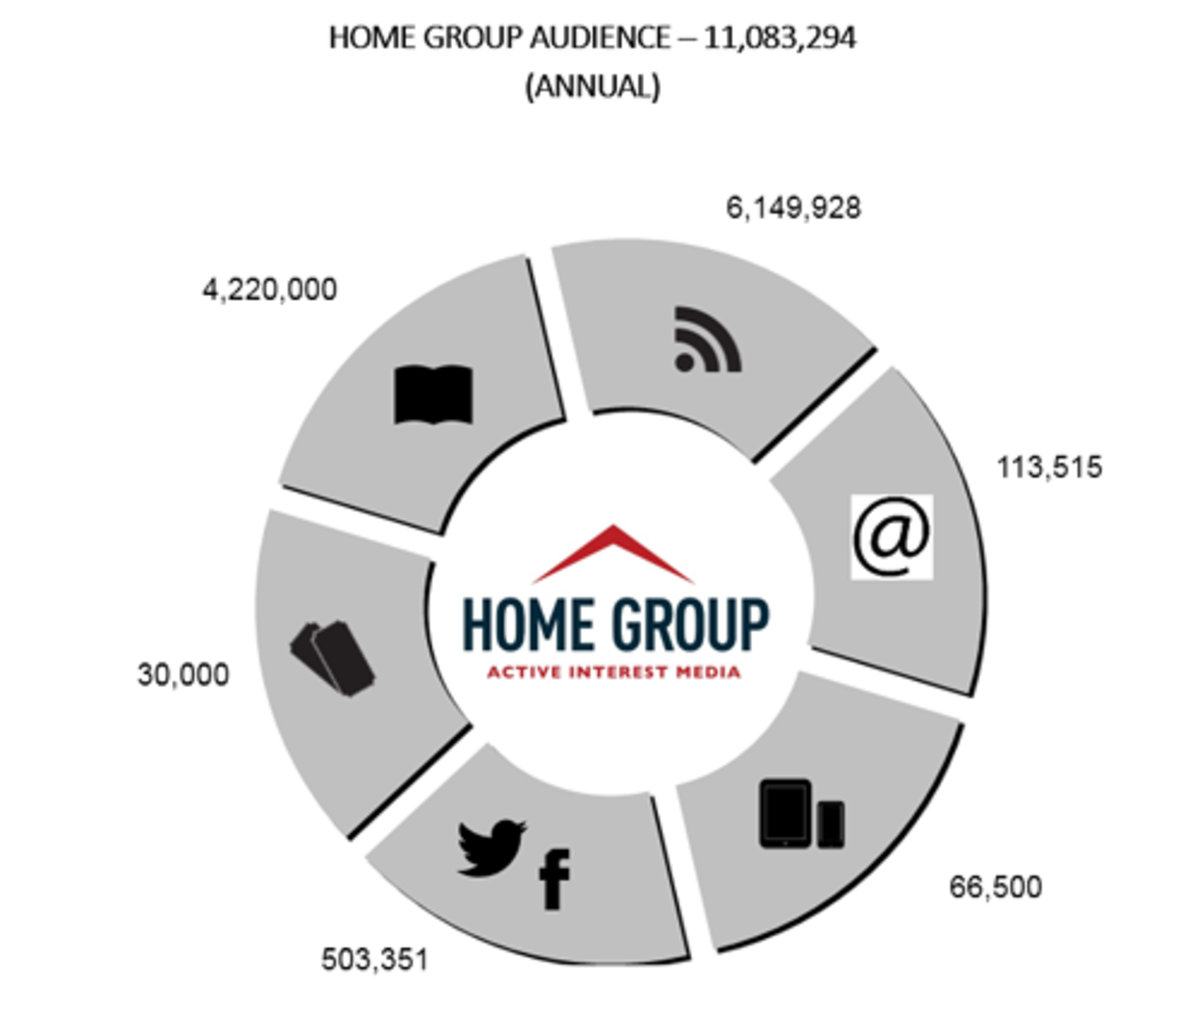 Home Group Active Interest Media consumer graph